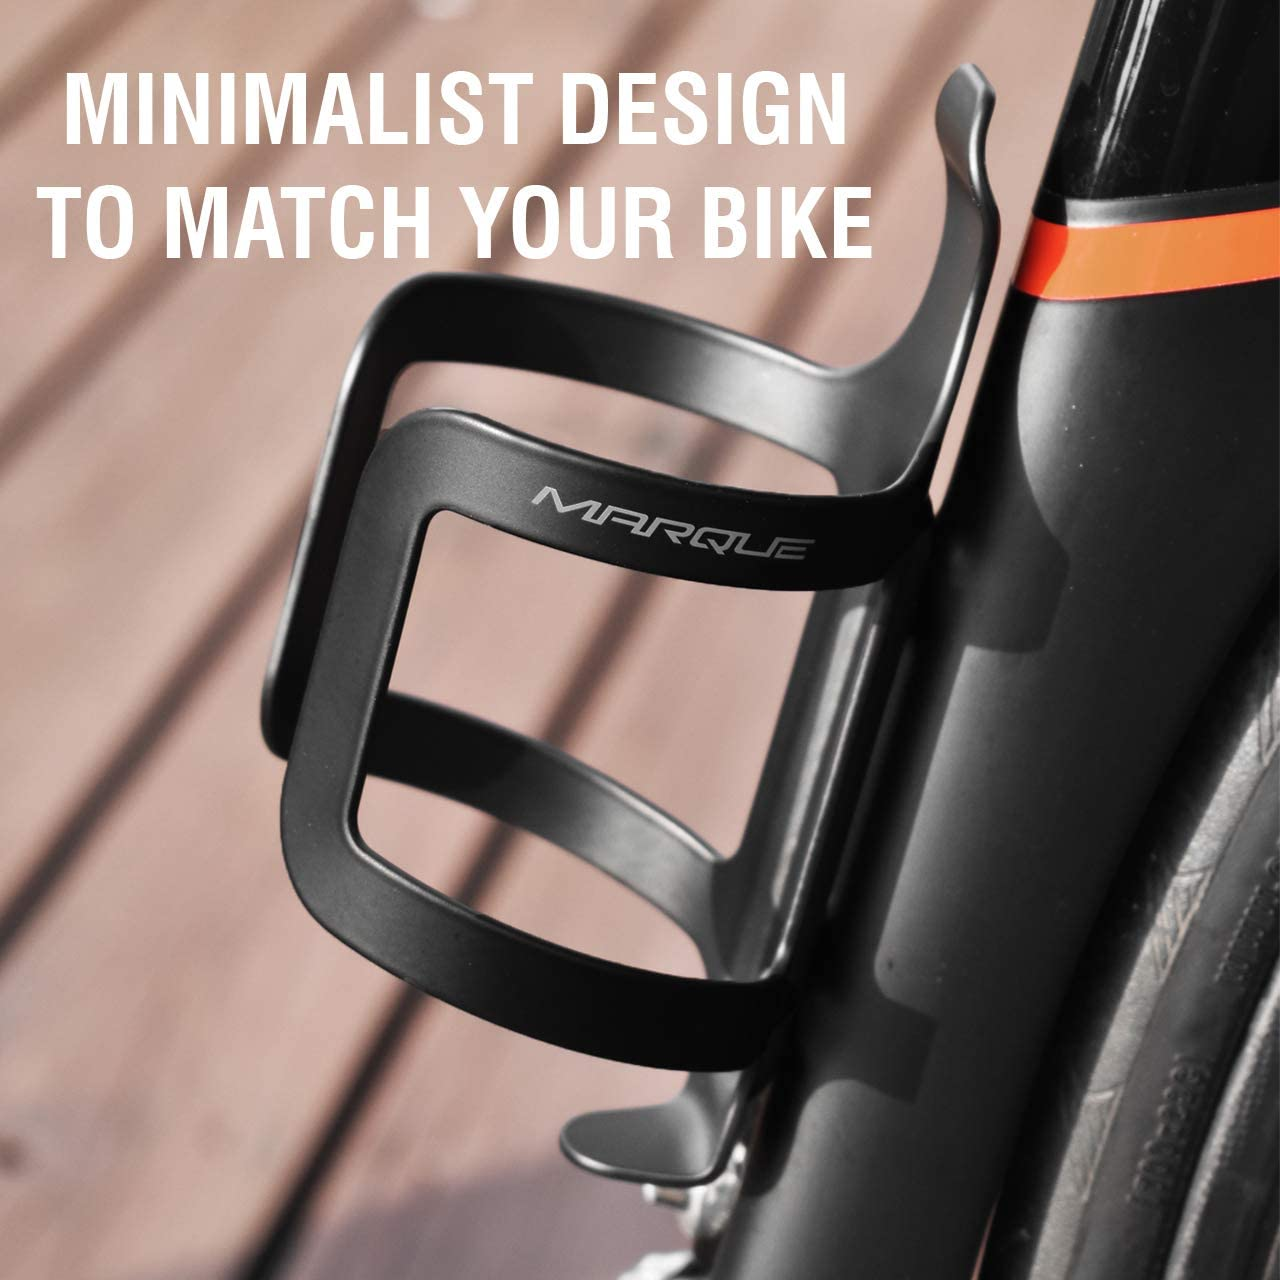 Fits Most Road Cycling and Mountain Bike Bicycle Hydration Bottle Cage MARQUE Holder Water Bottle Cage Easy to Install and Use